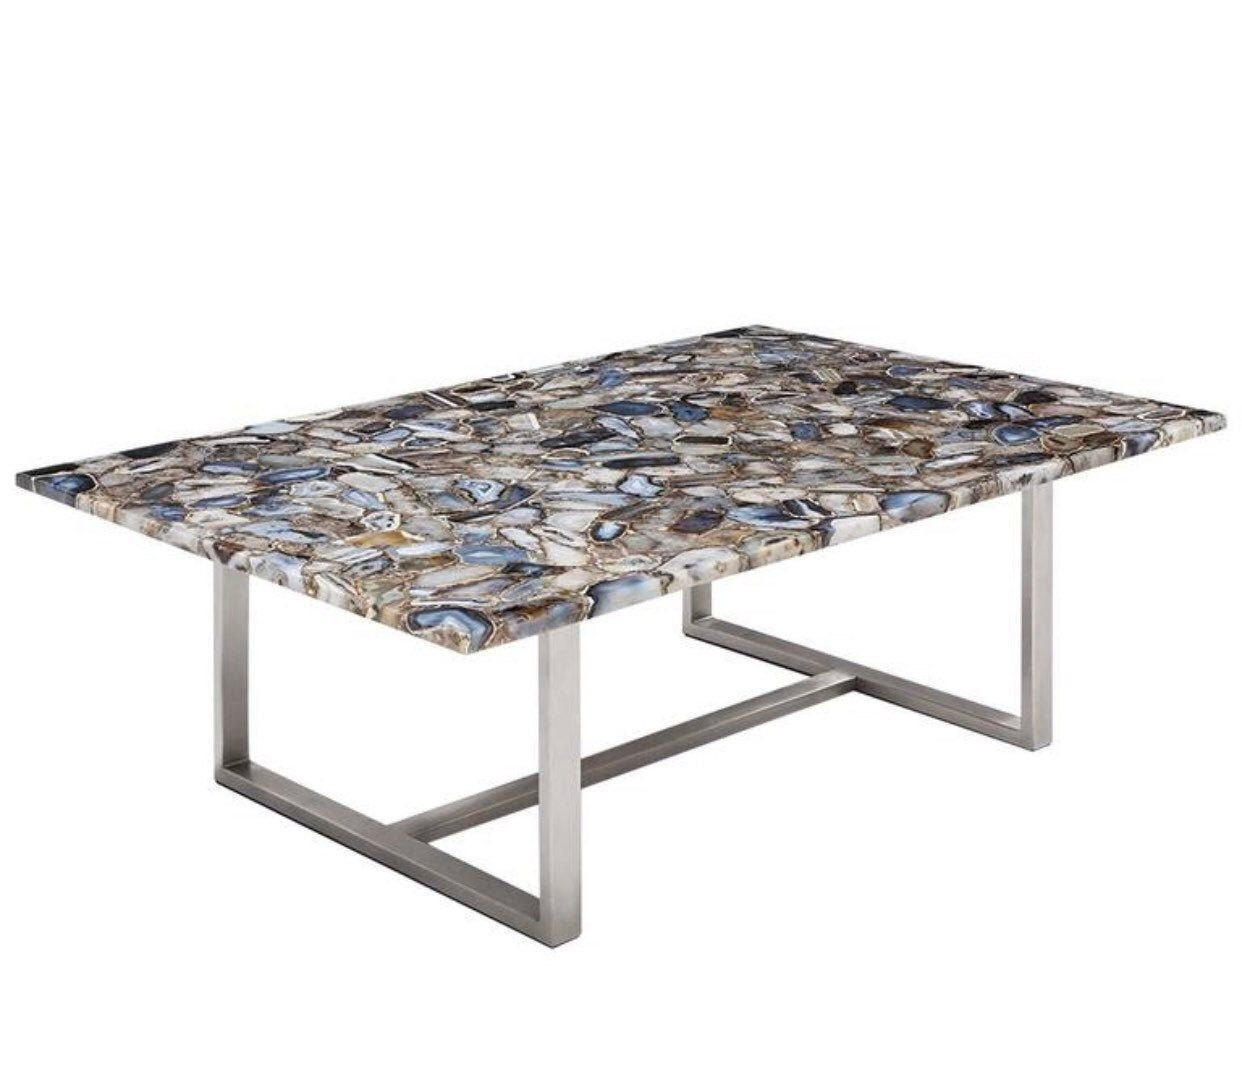 Agate stone coffee table sofa table low table sofa side